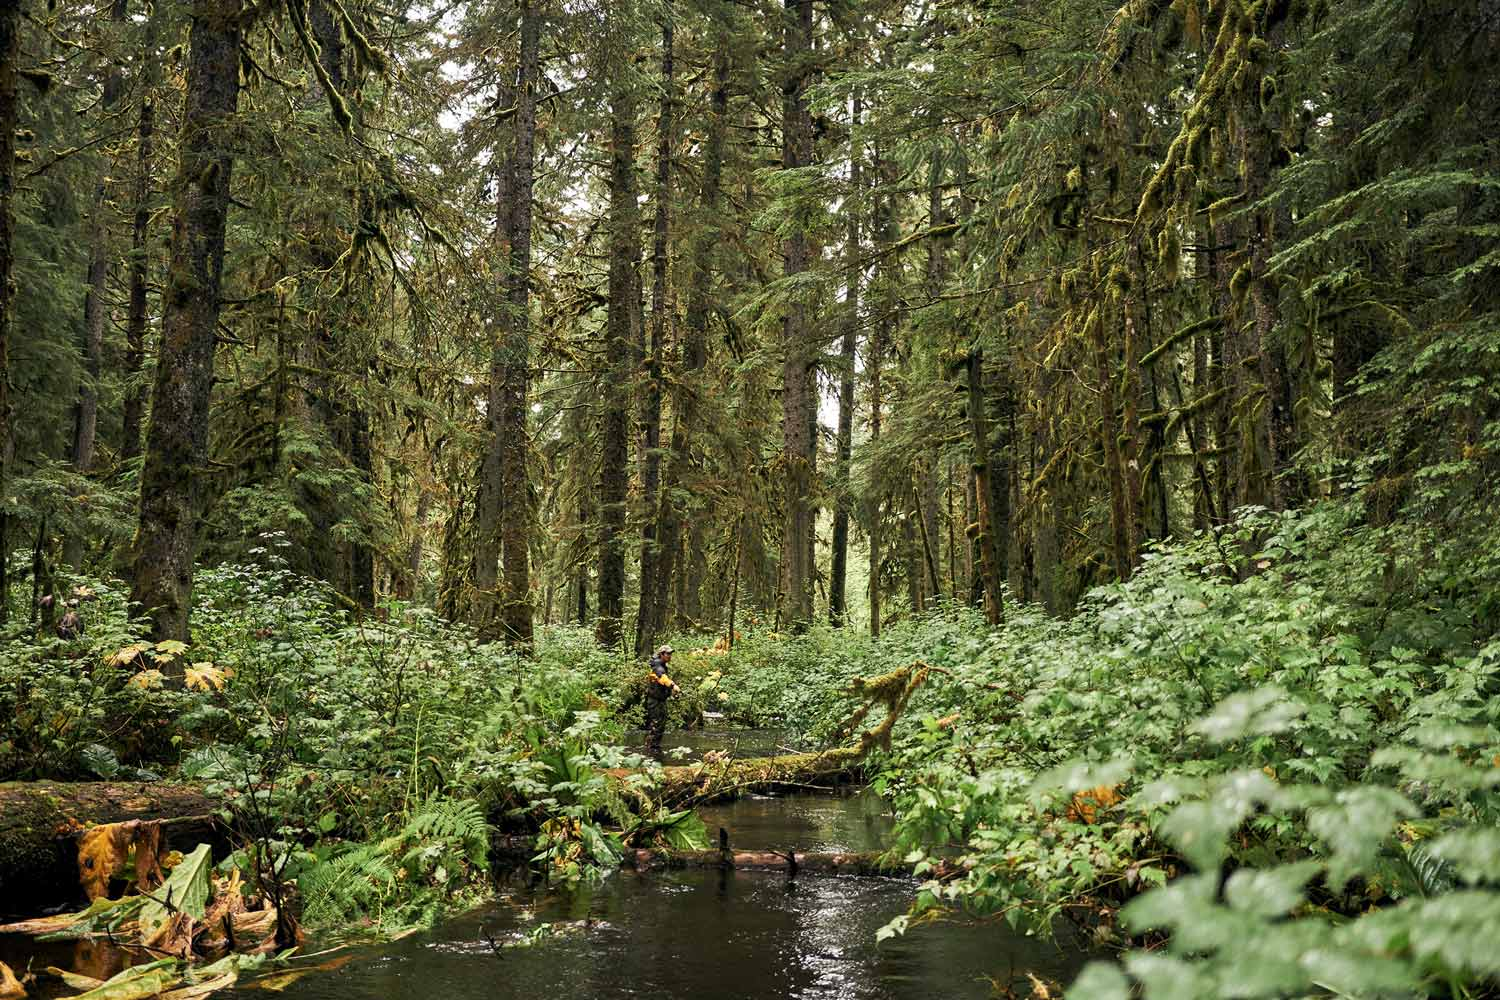 The Forest Service wants to open 9.2 million acres to potential logging. Here's your chance to say something about it.